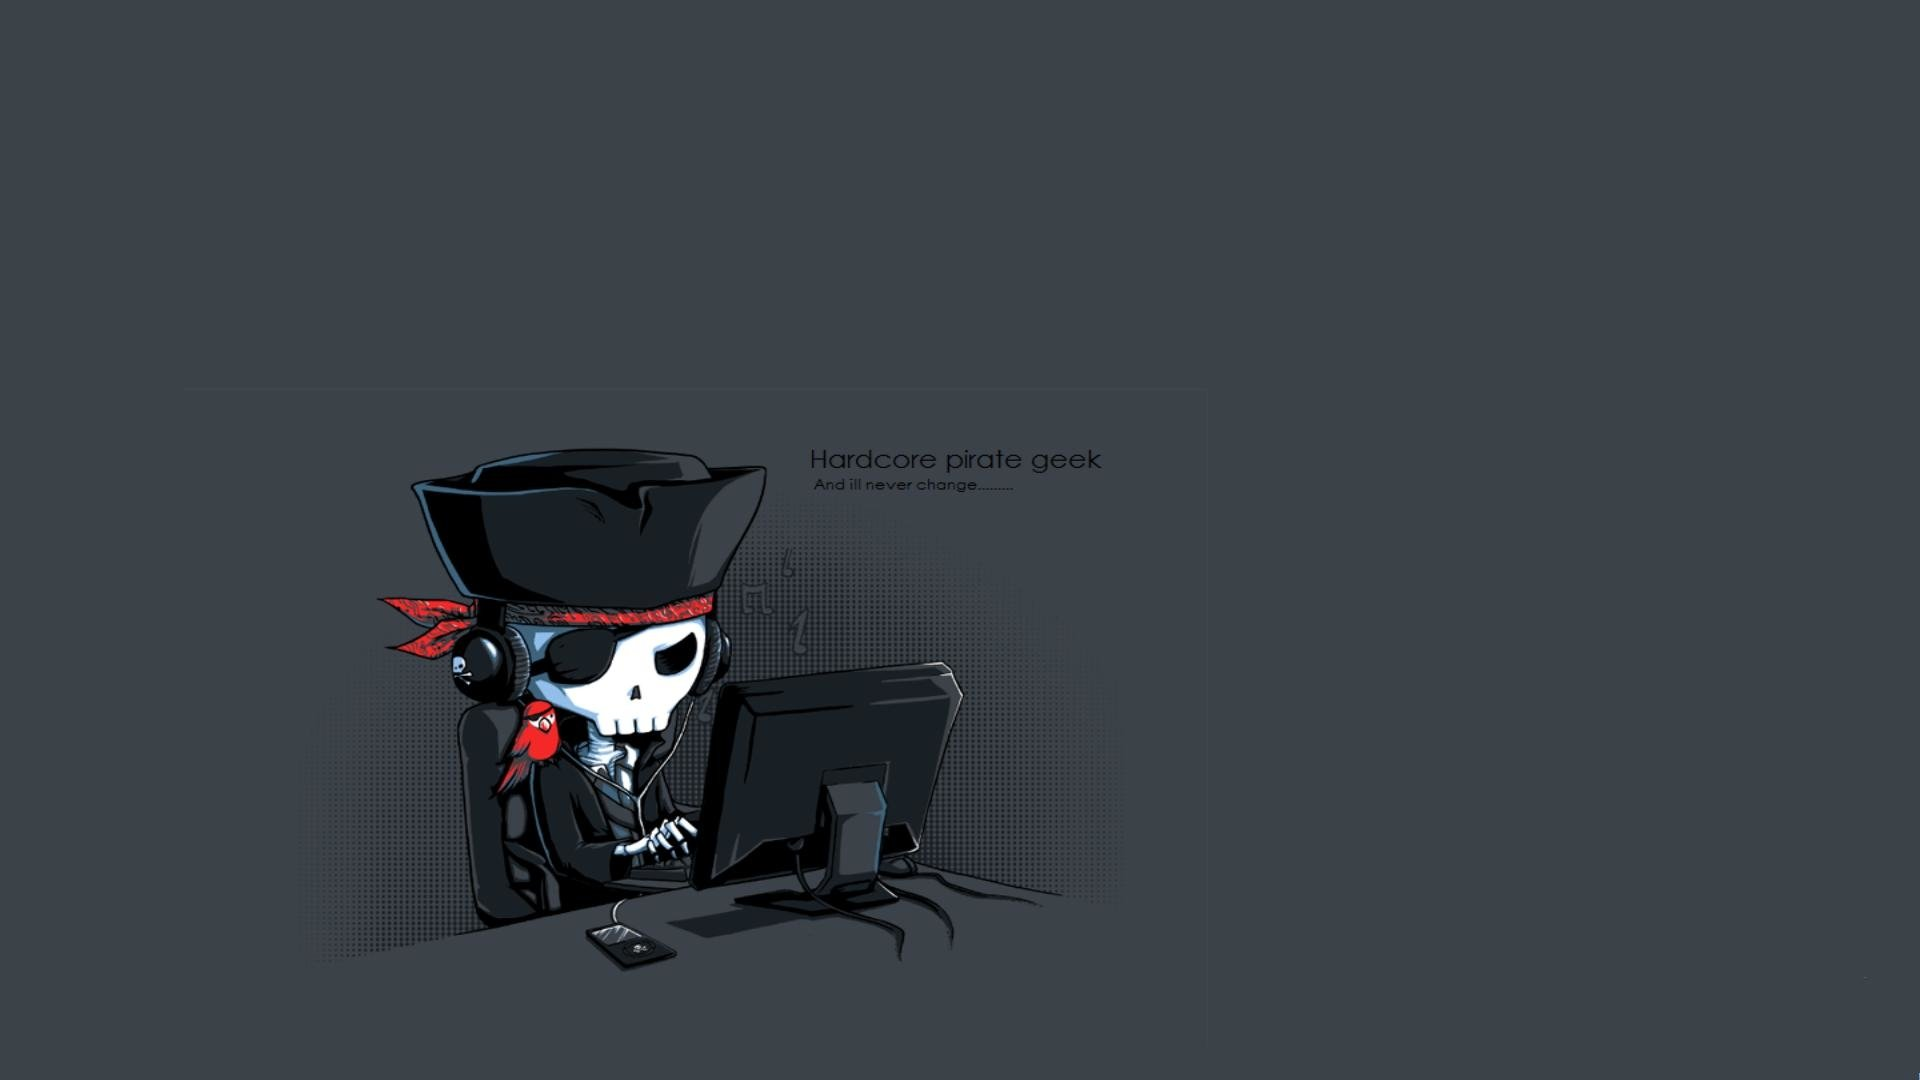 windows 7 pirated edition wallpaper